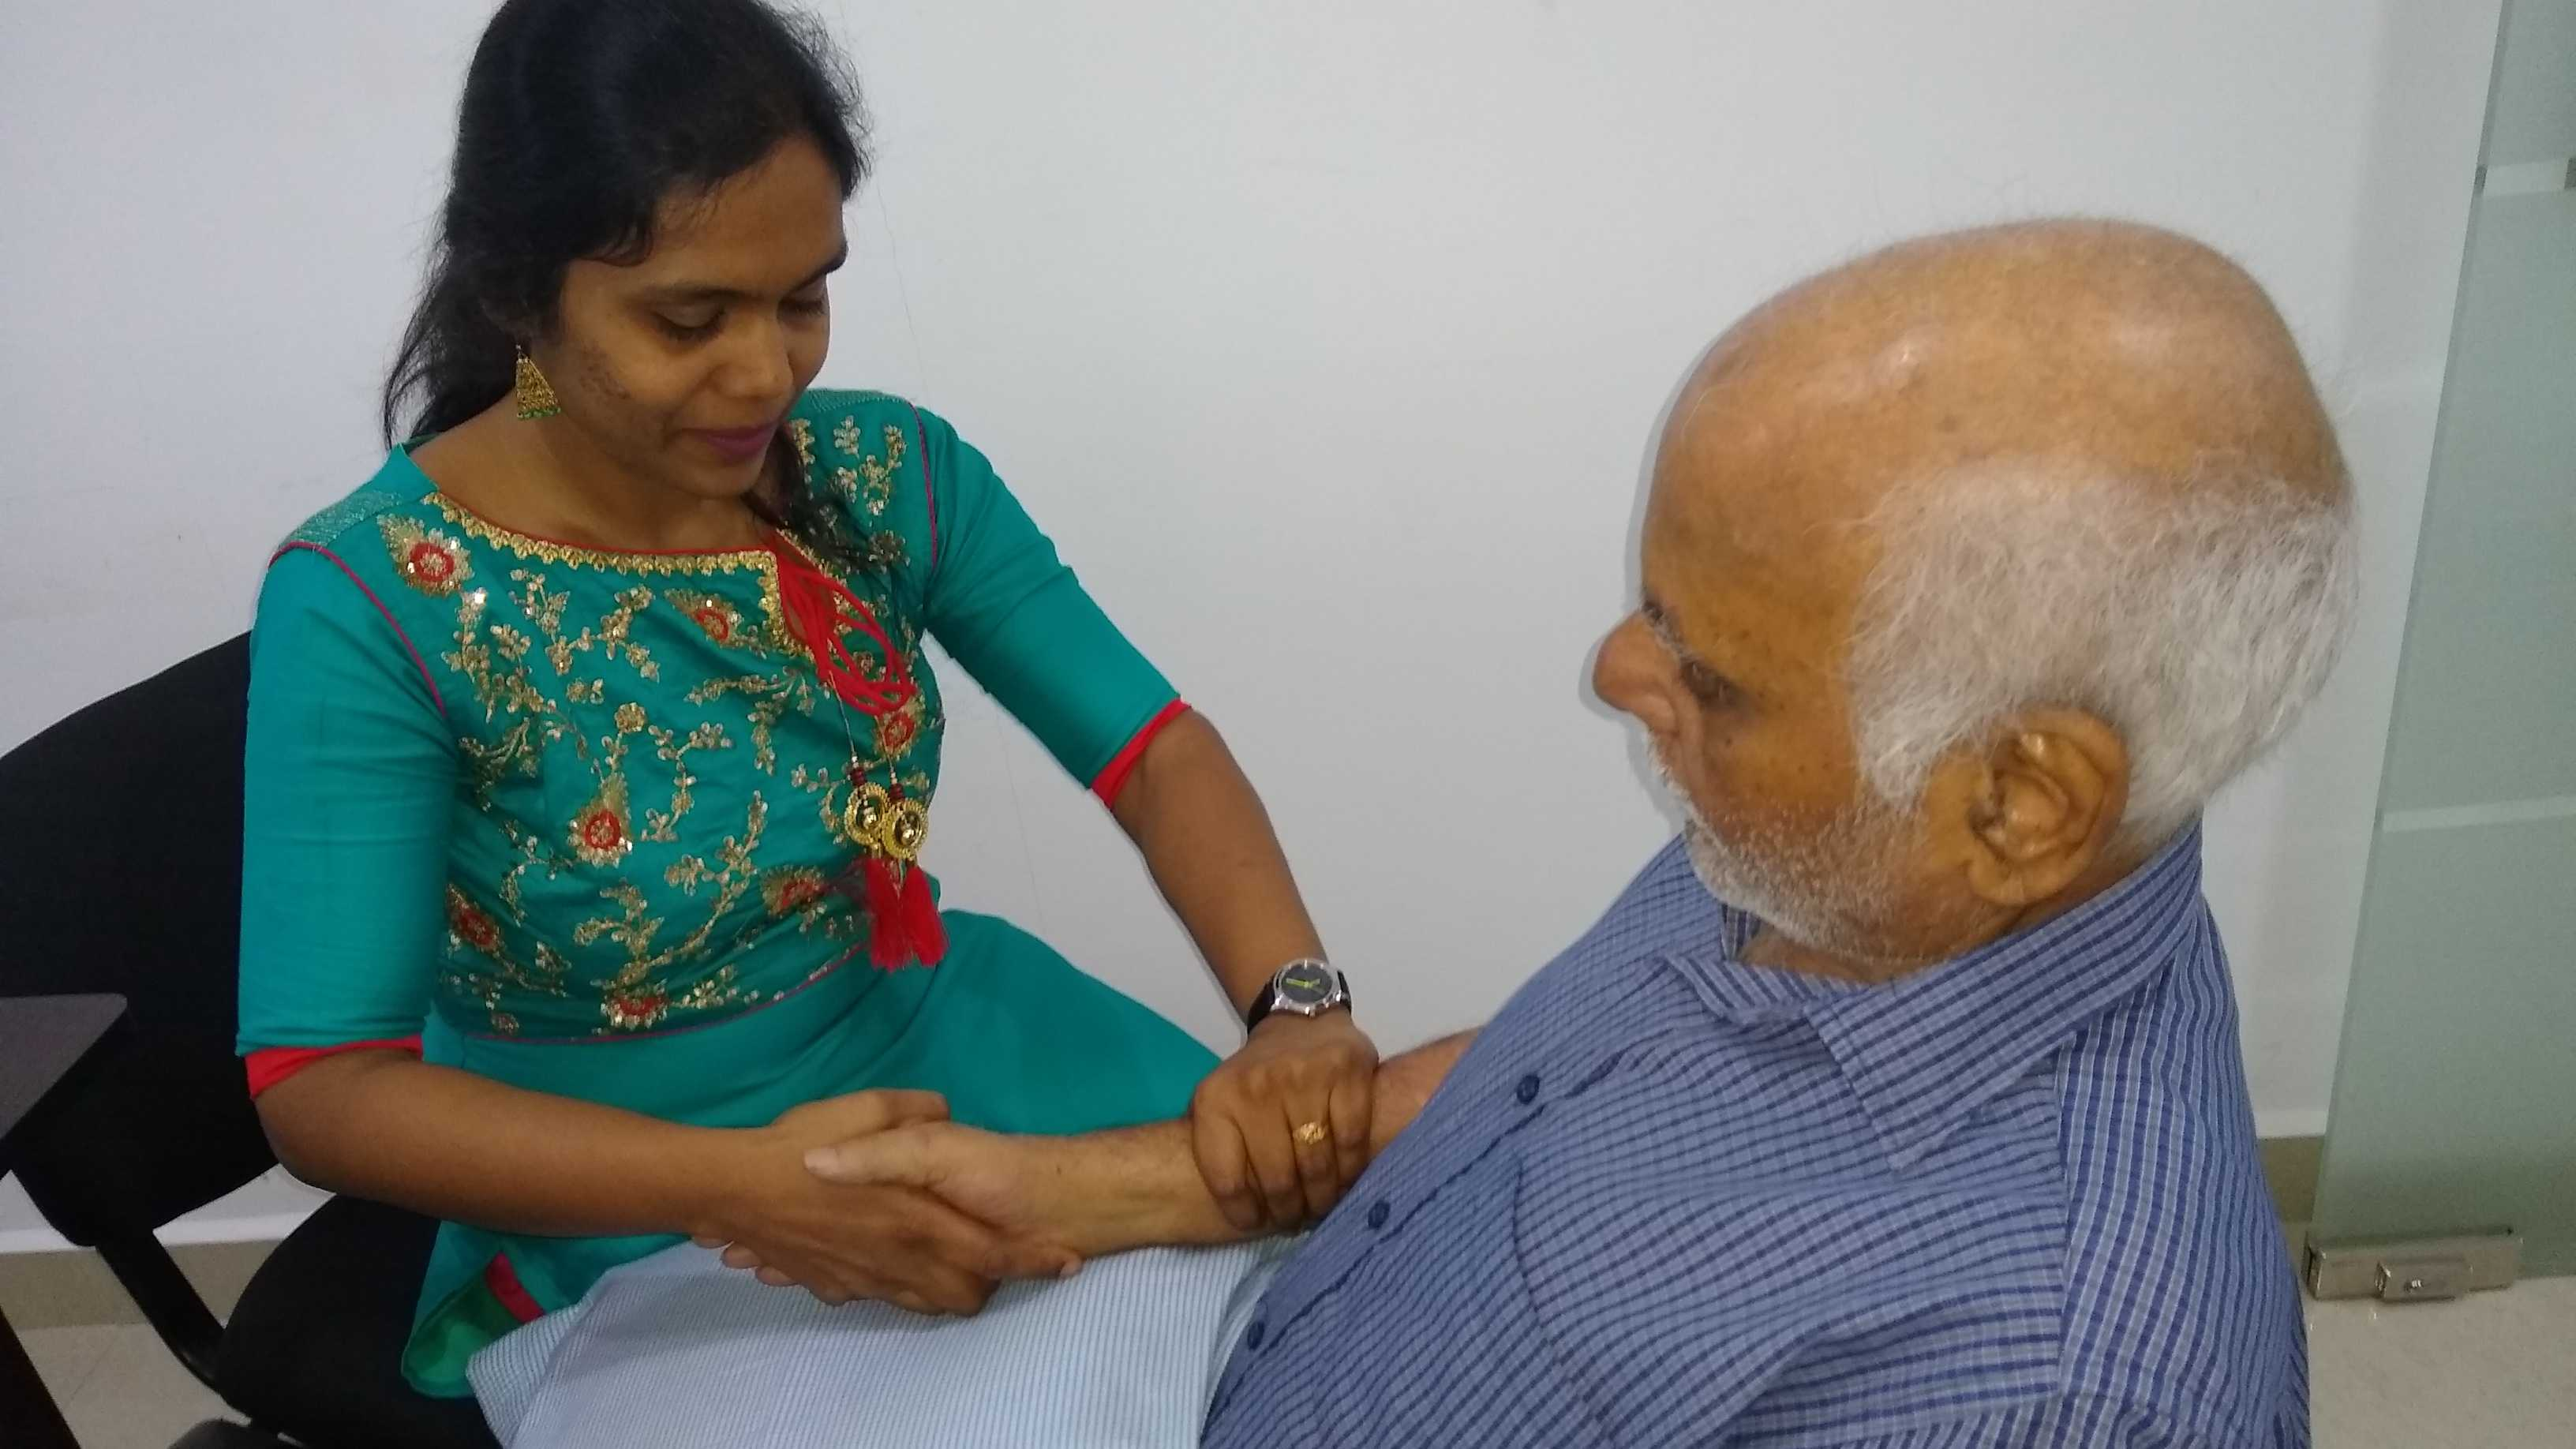 Occupational therapist treating patient